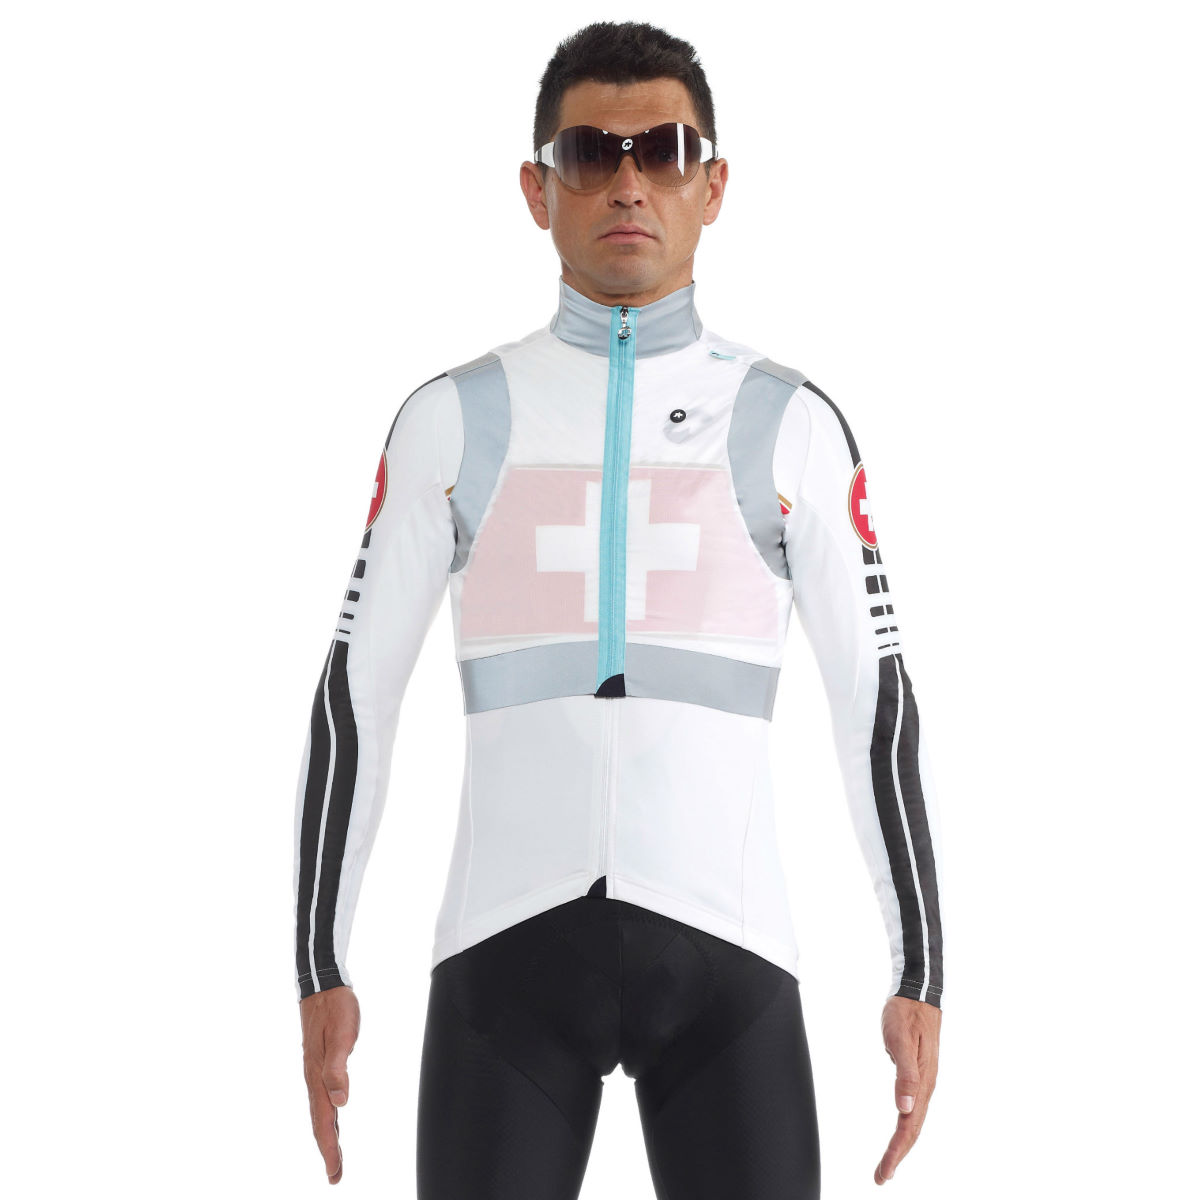 Assos emergency vest cycling gilets white panther ss14 ave324we1 0